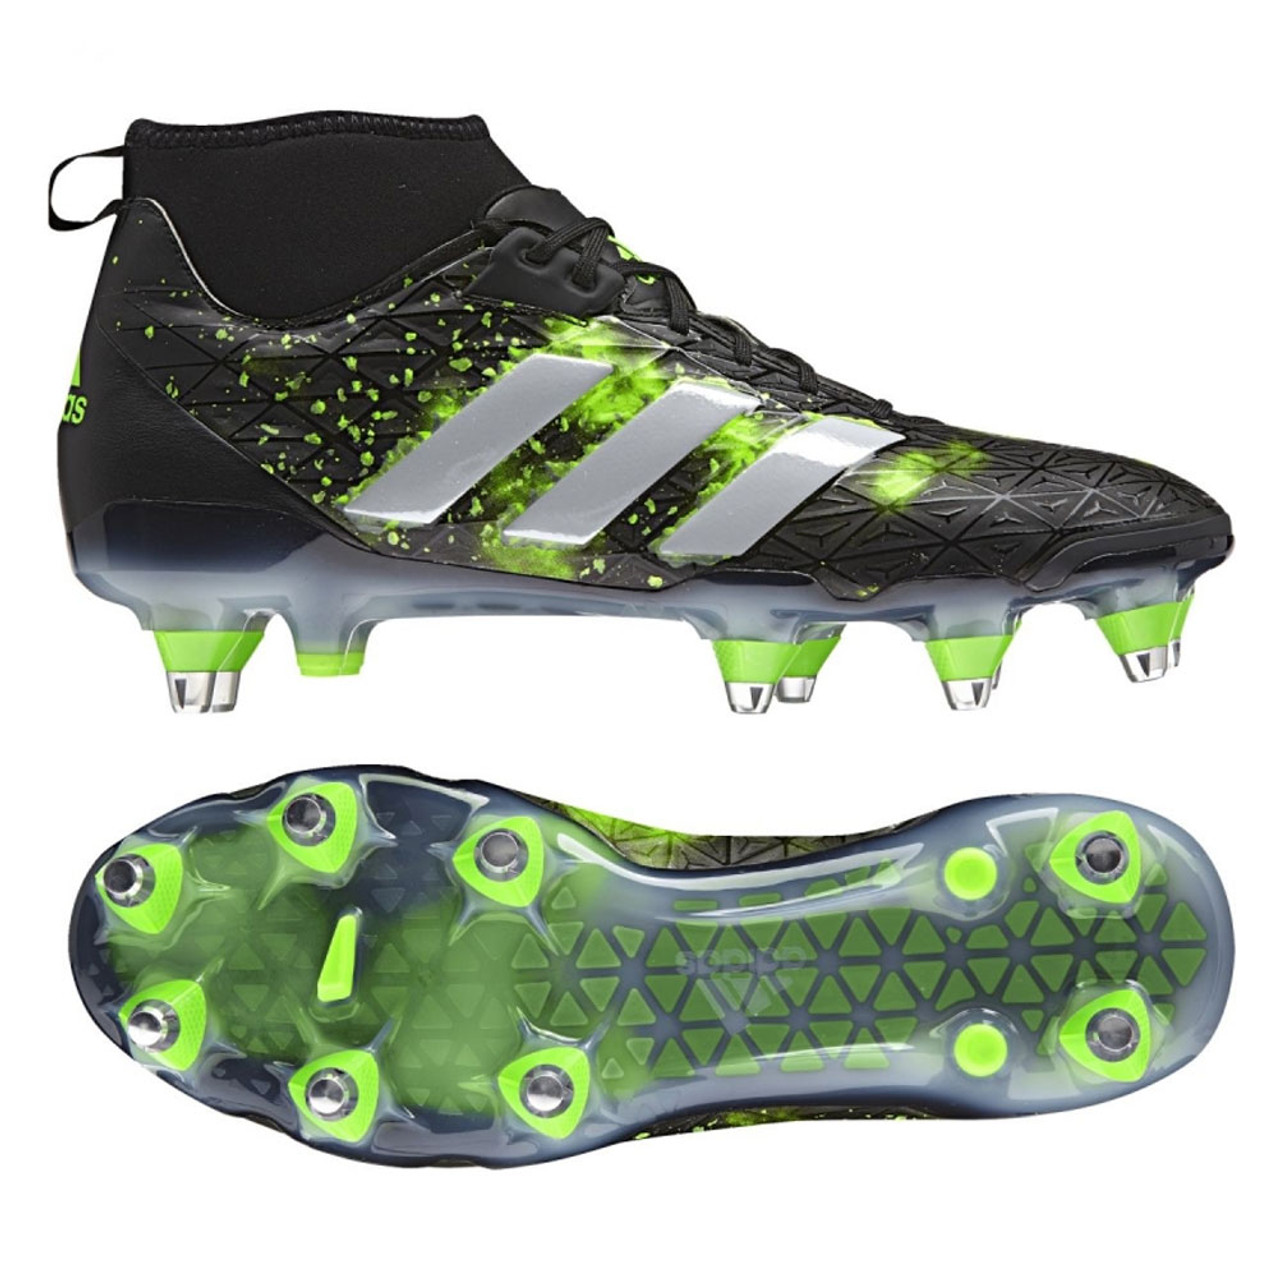 wholesale dealer 3298c c8b6b ADIDAS kakari force SG mid rugby boots  black green